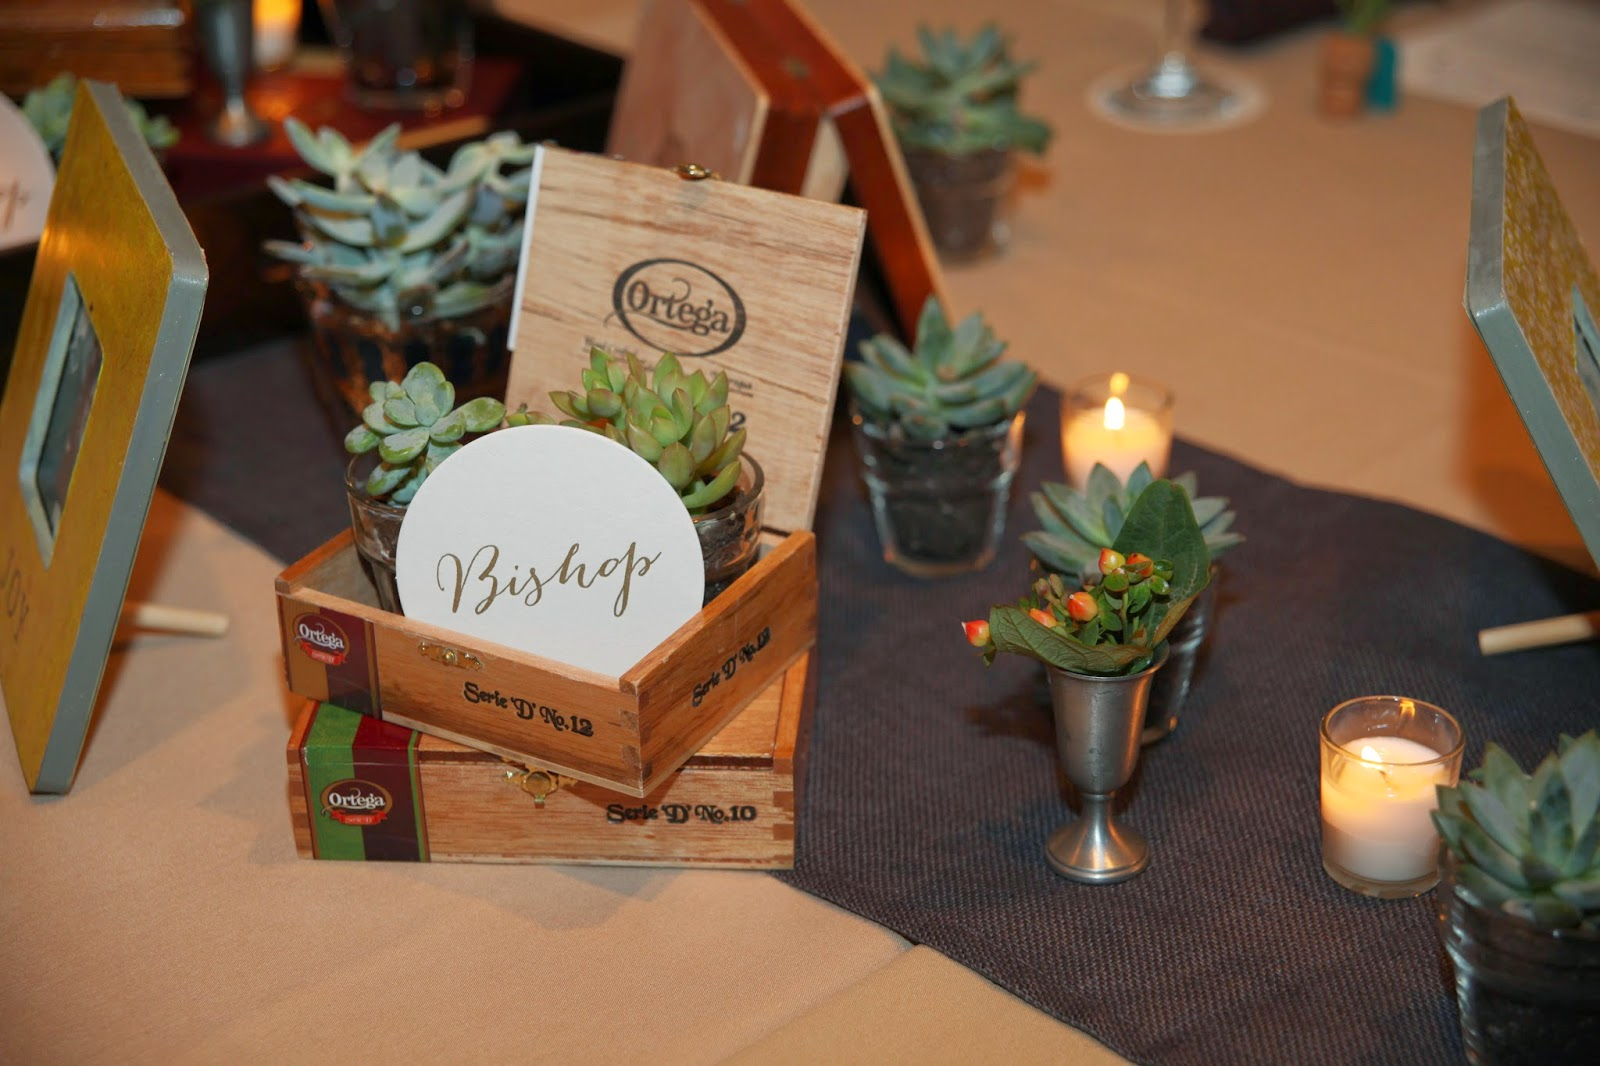 cigar box as wedding reception table decorations